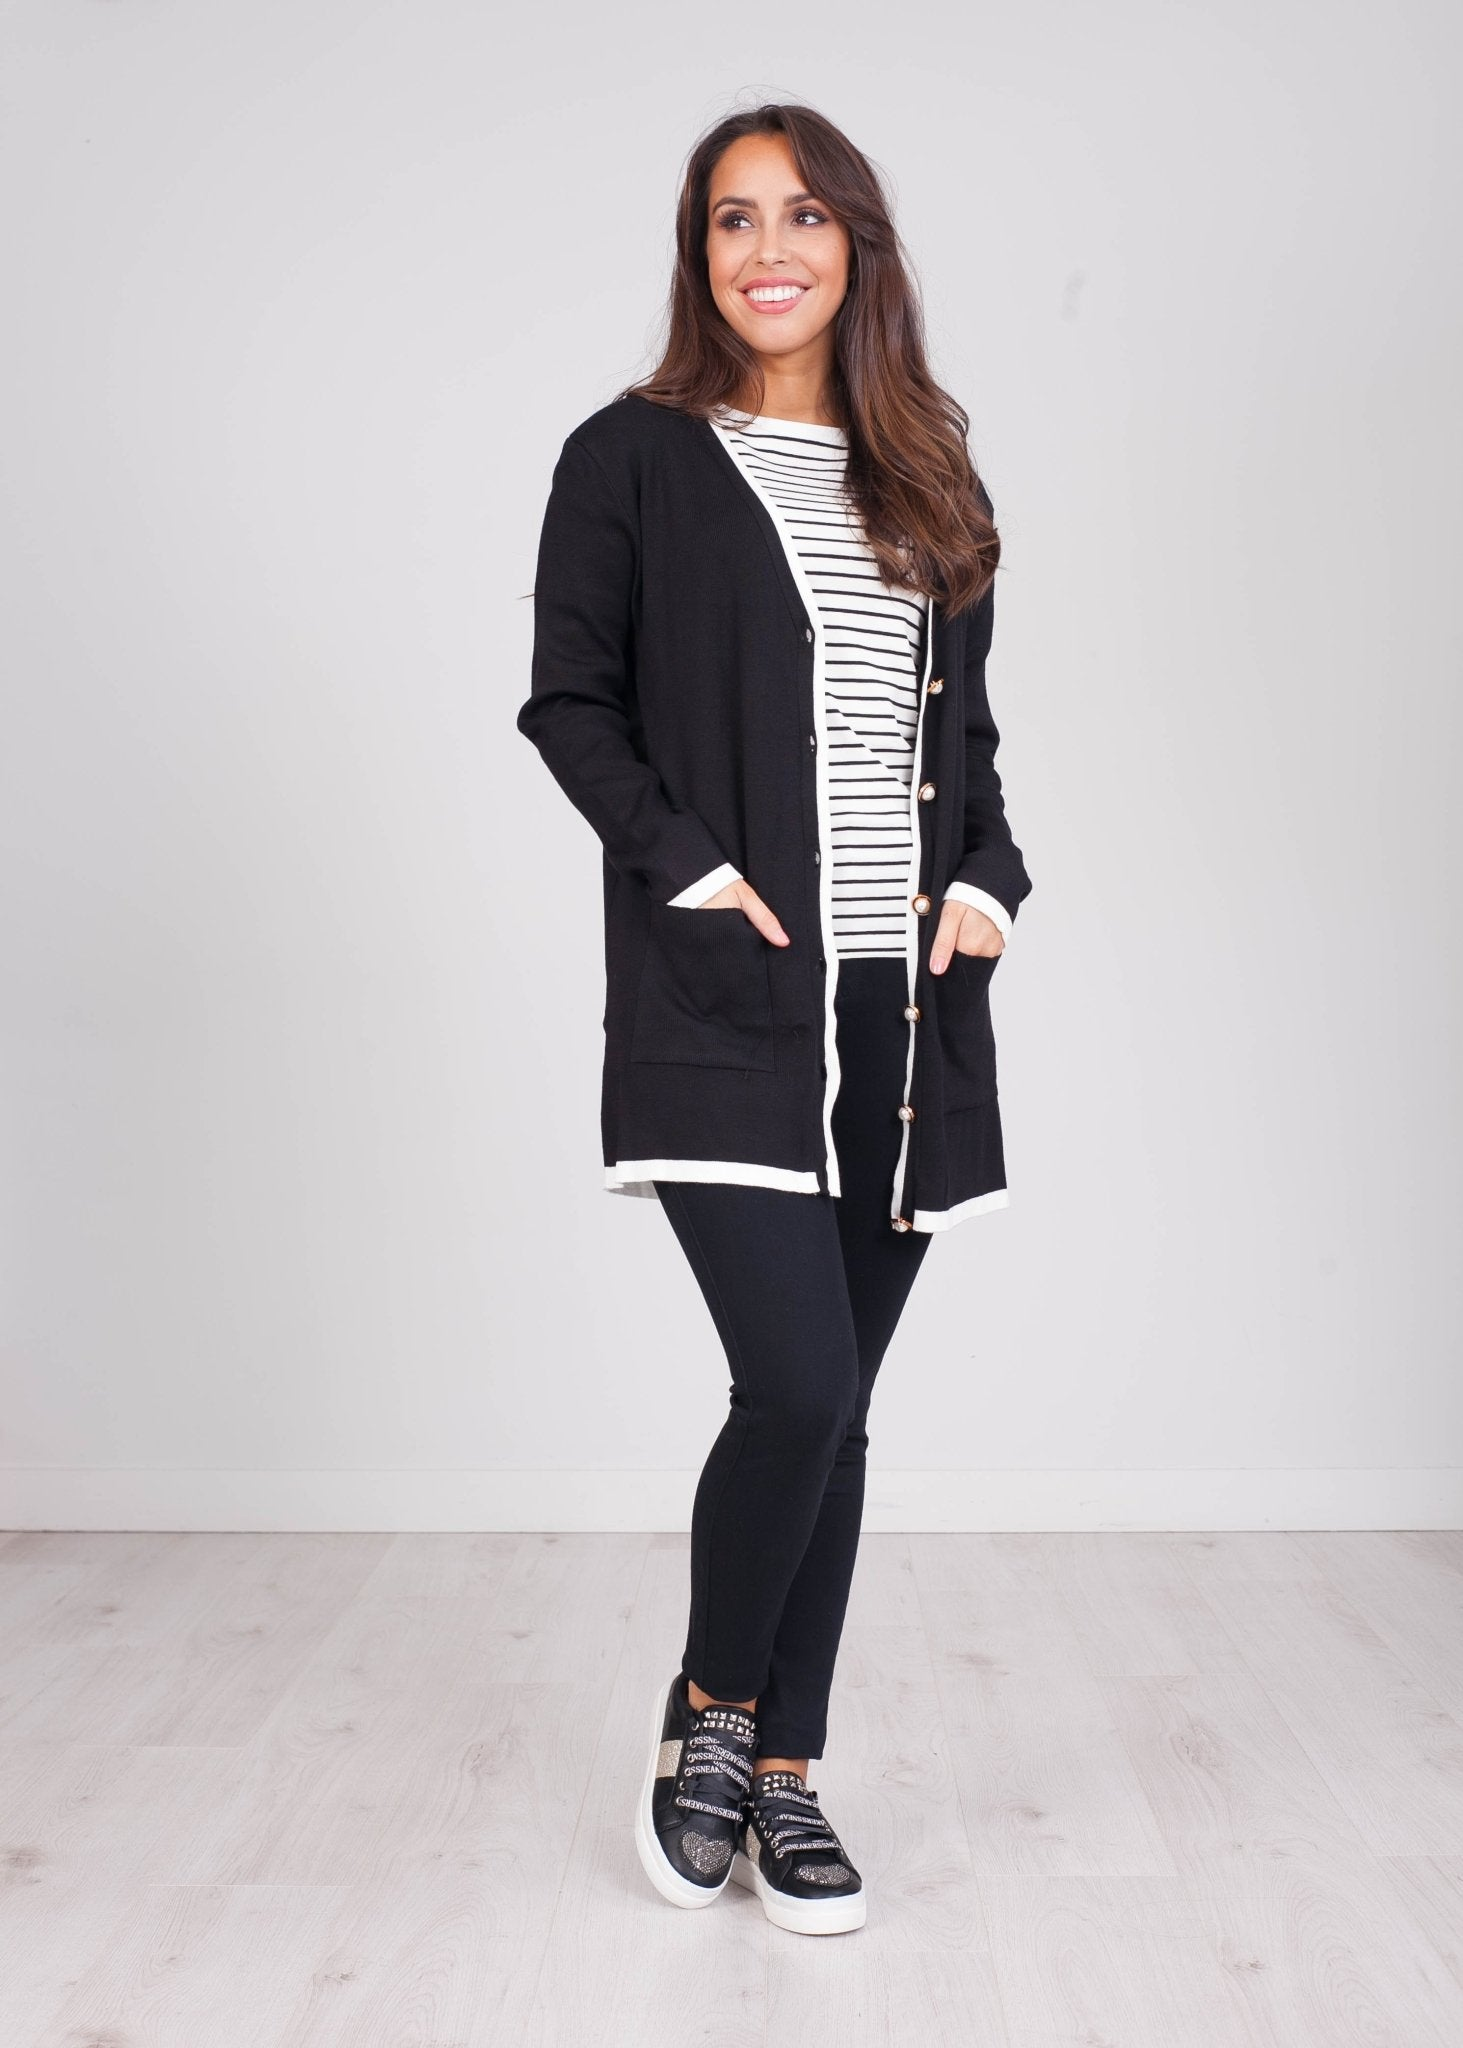 Emilia Black & Cream Trim Cardigan - The Walk in Wardrobe